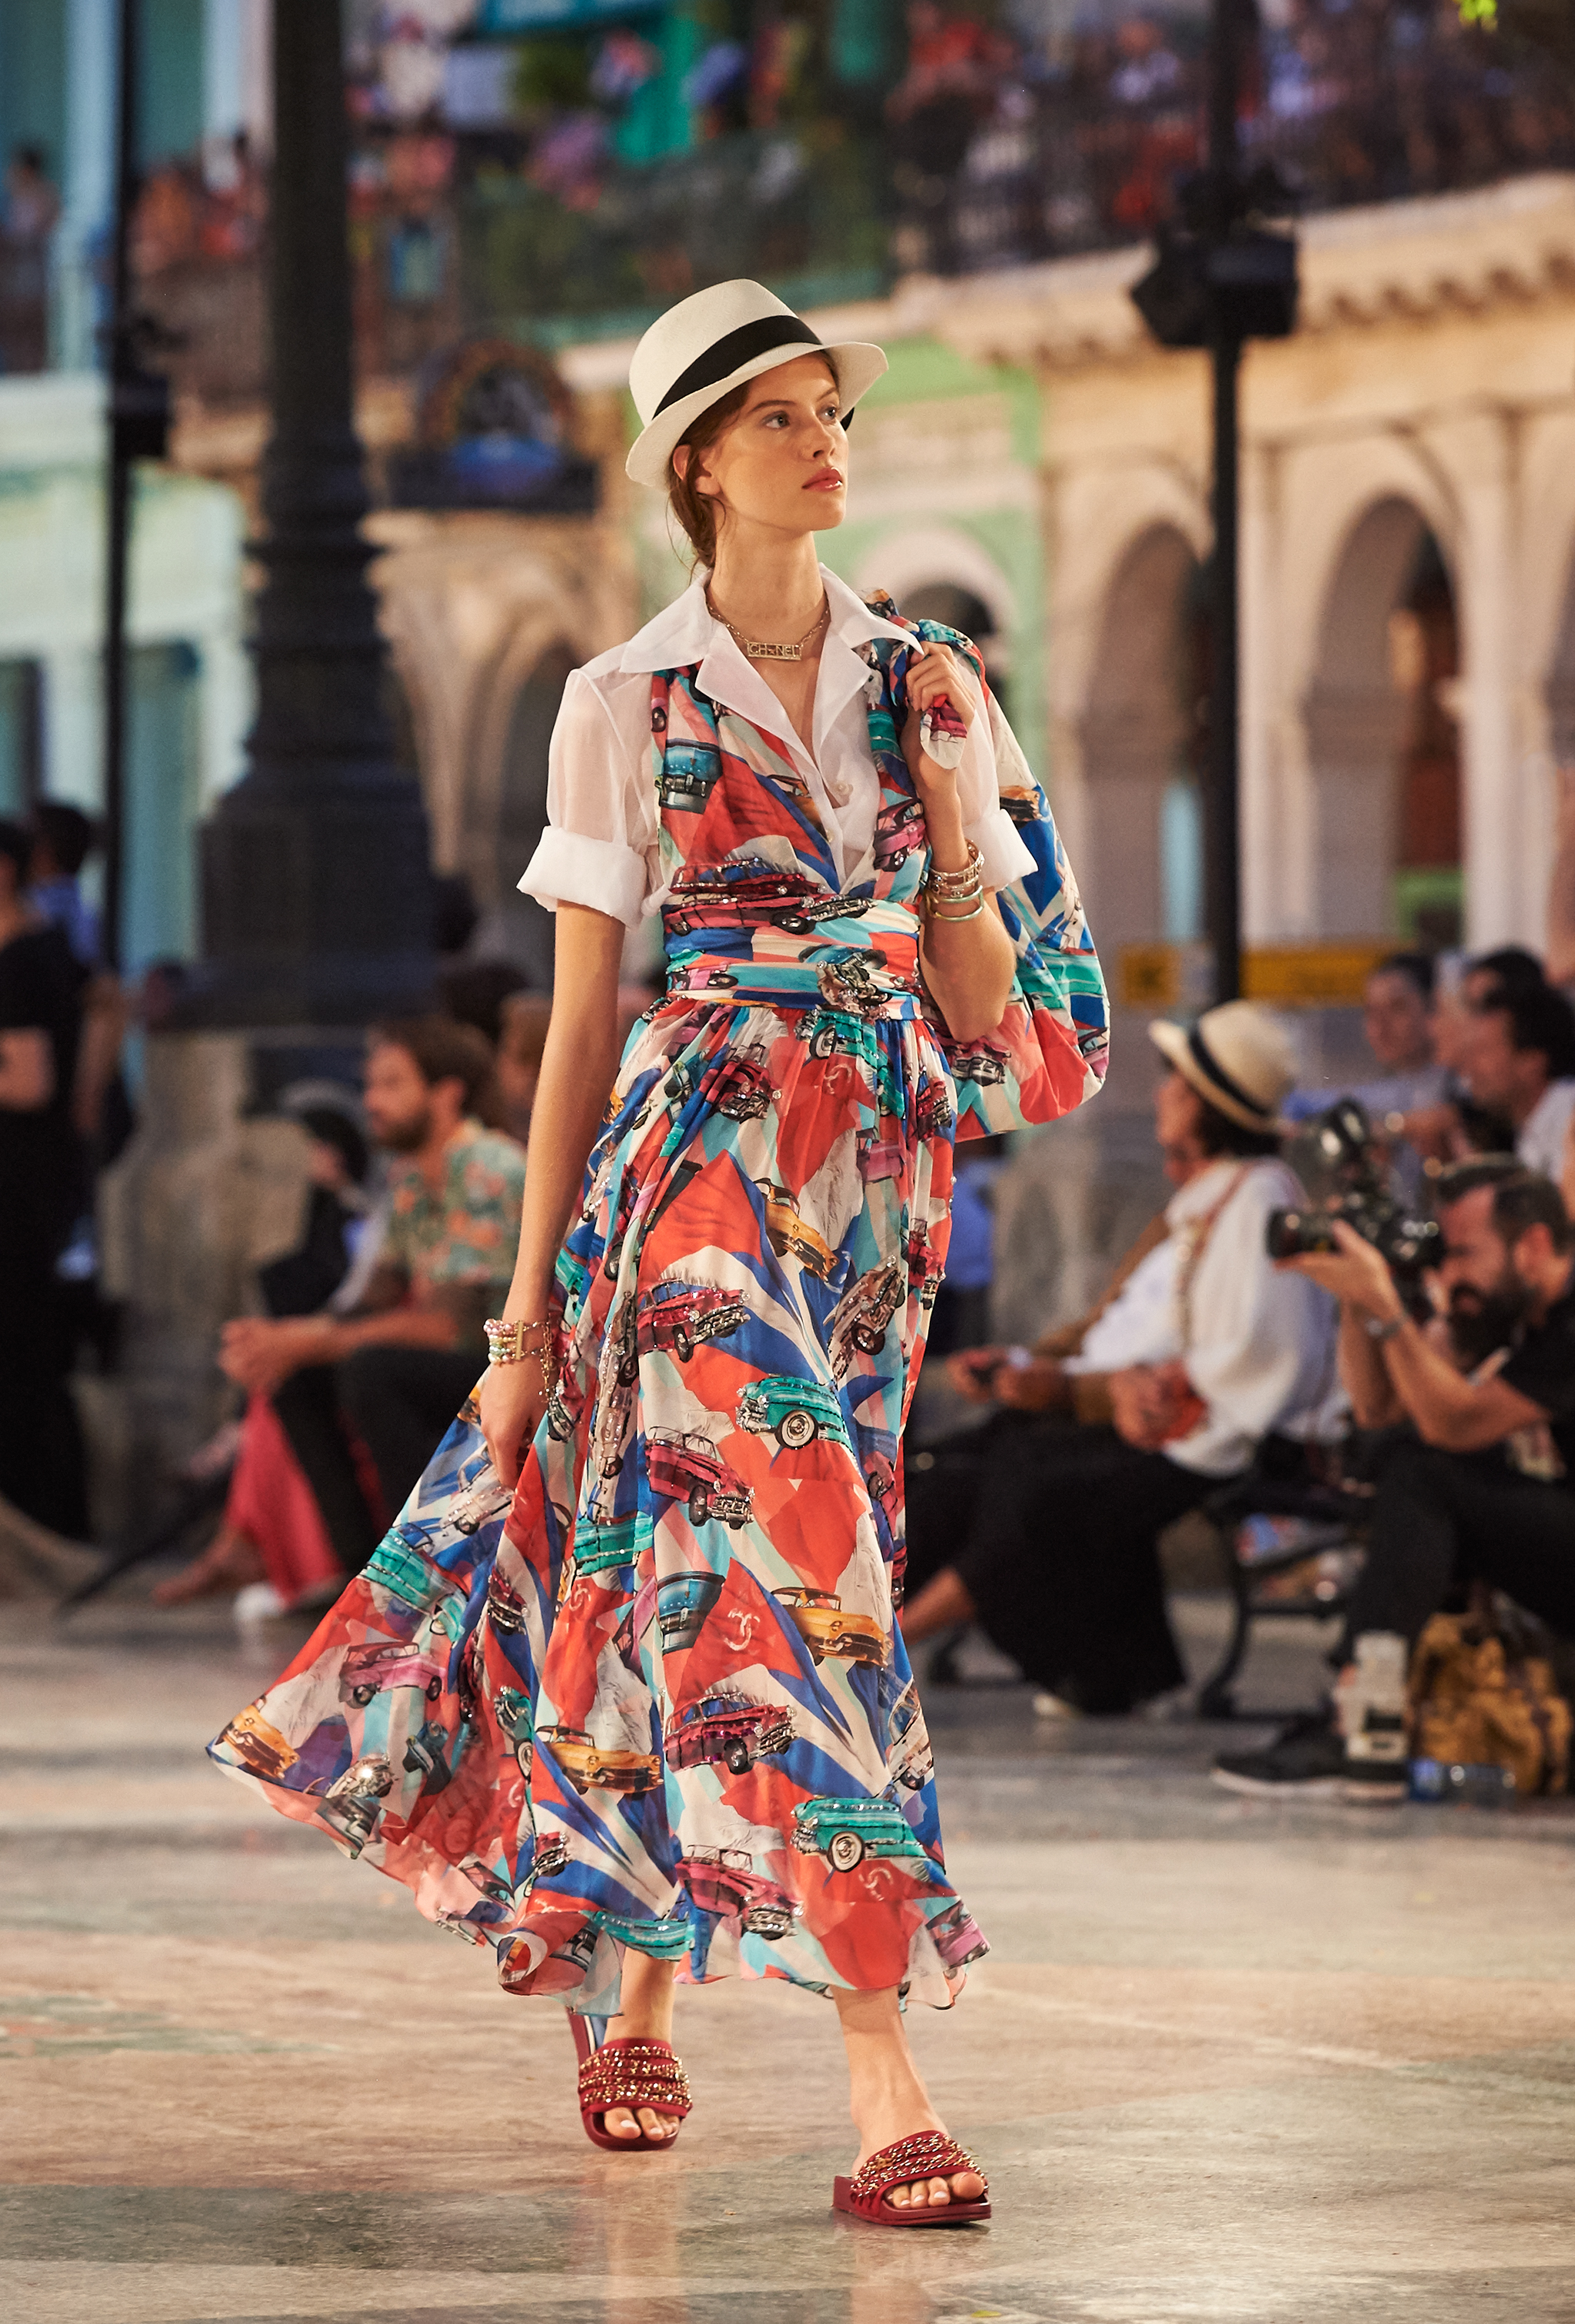 08_Cruise 2016-17 collection - Show pictures by Olivier Saillant - Look 71.jpg